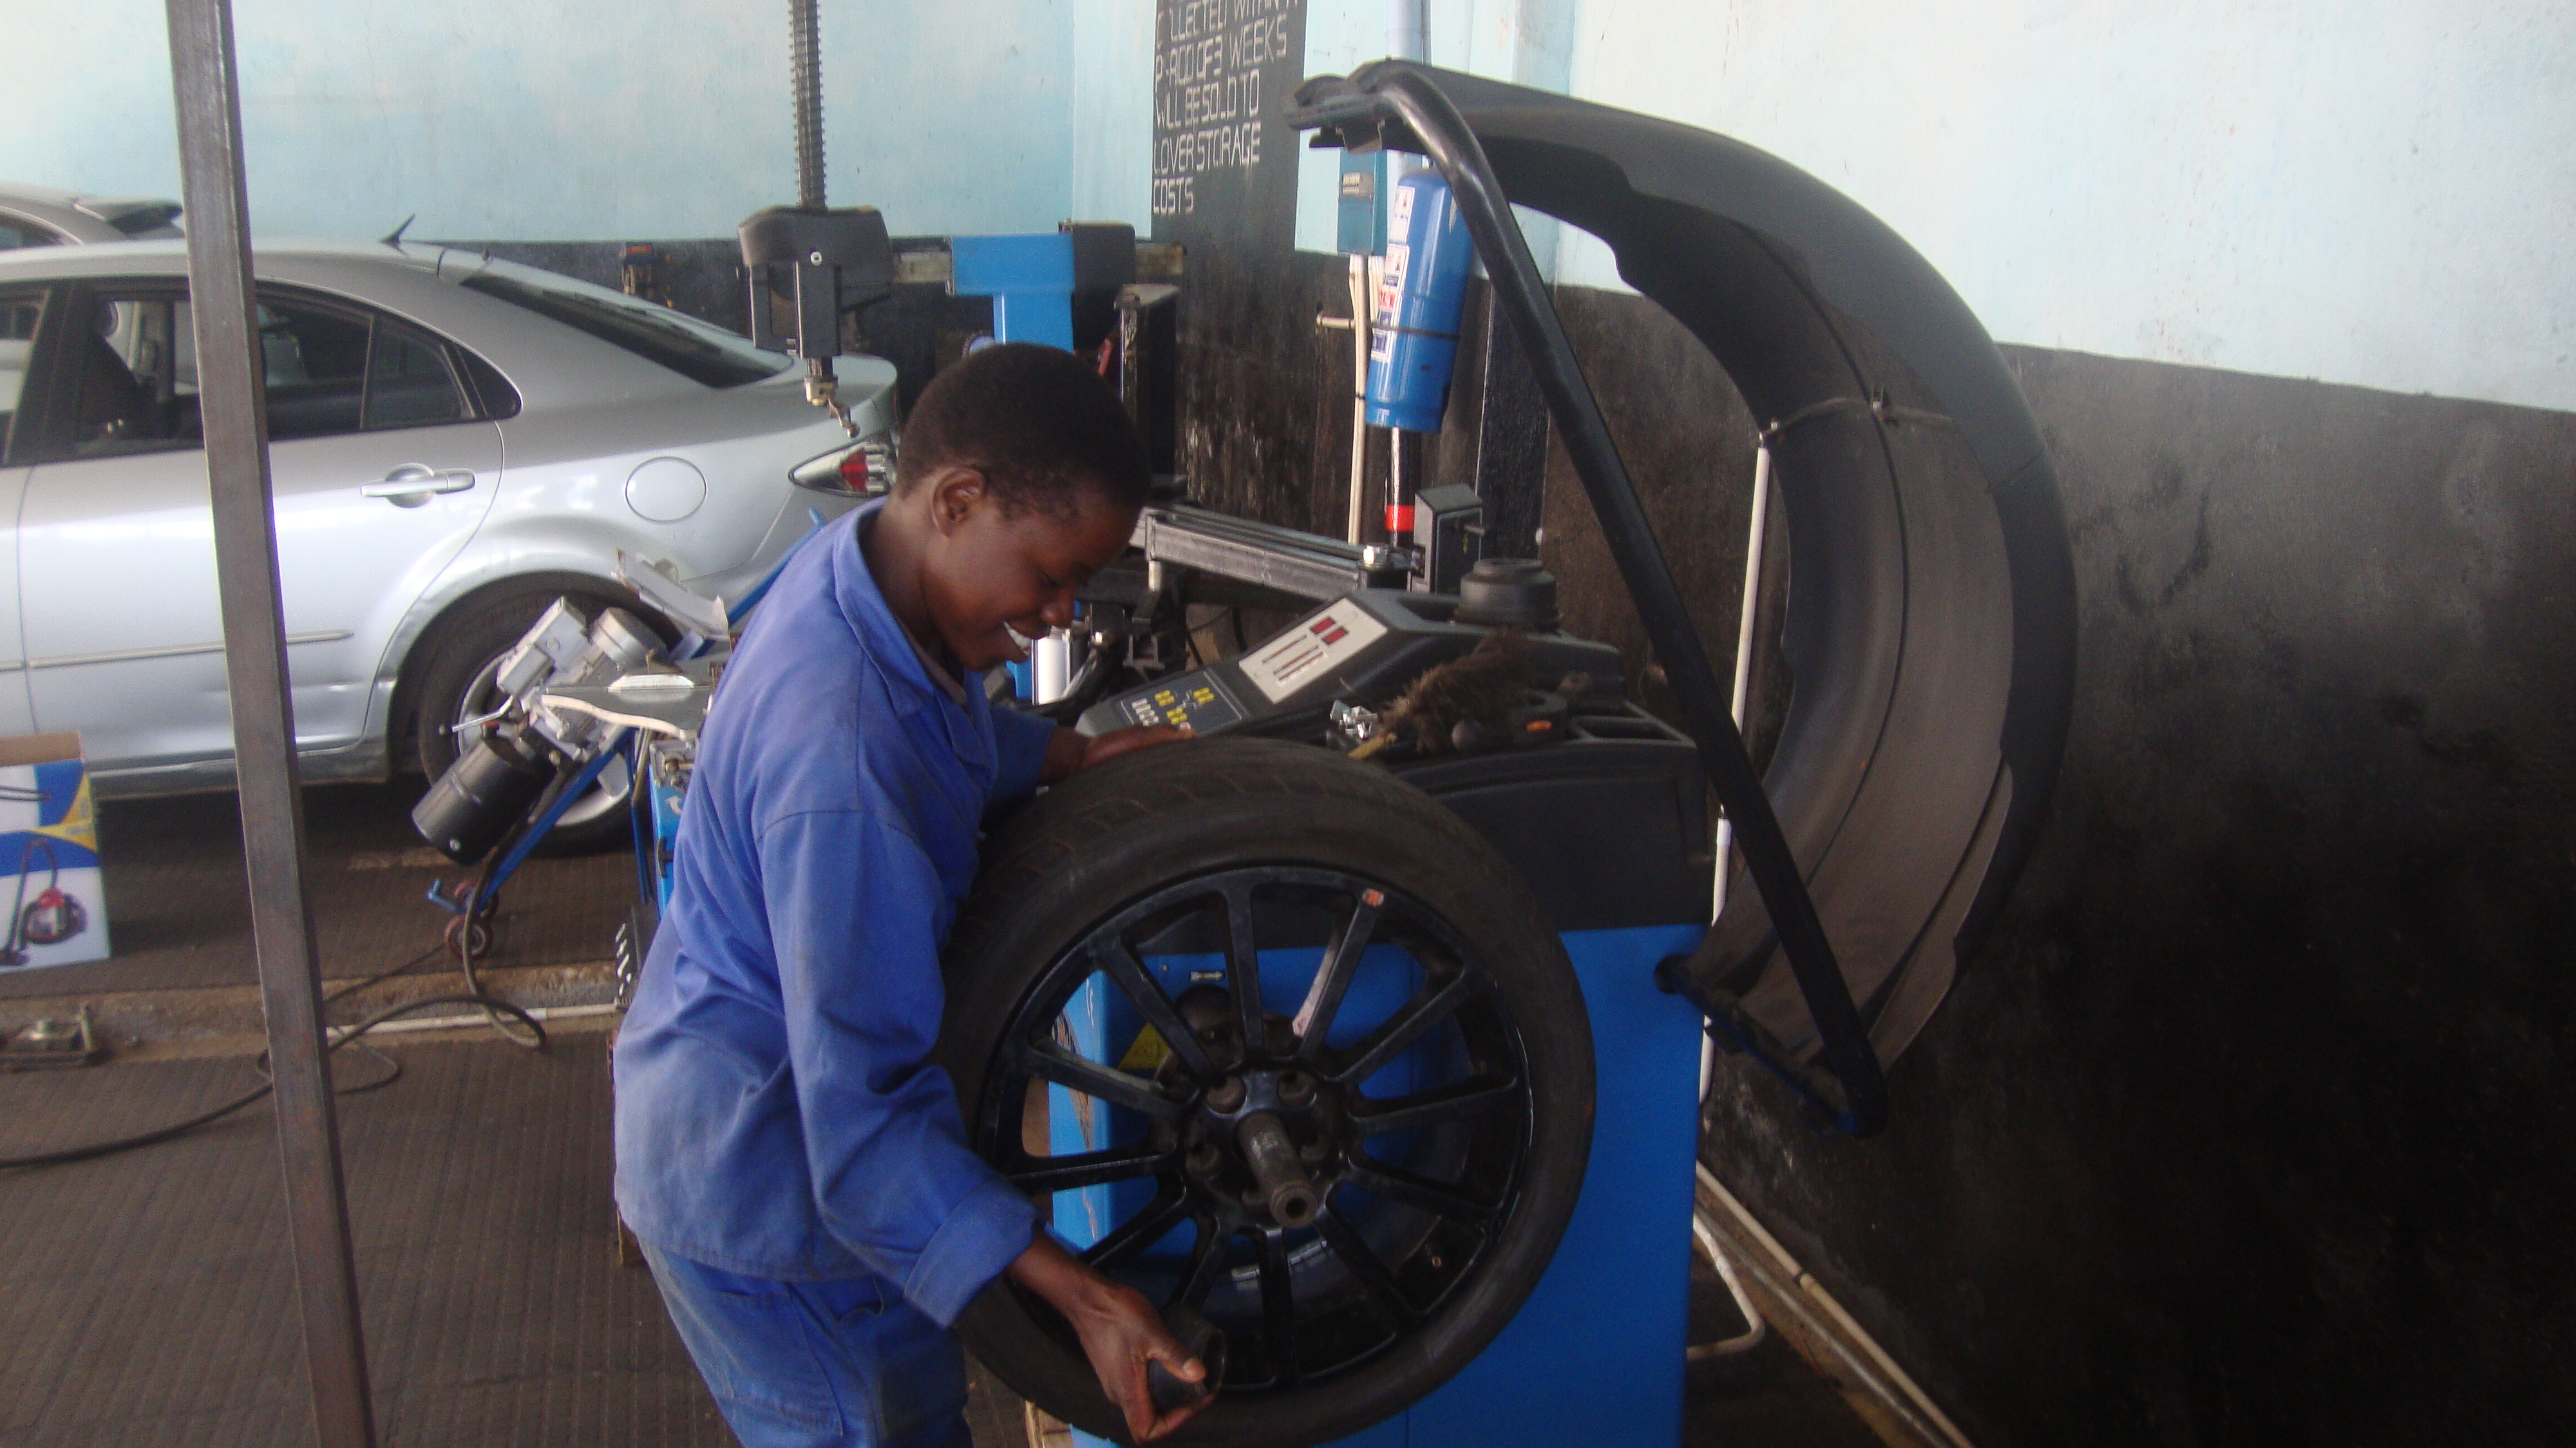 Giveth Mambo has been working in a garage in Harare, Zimbabwe for over one year